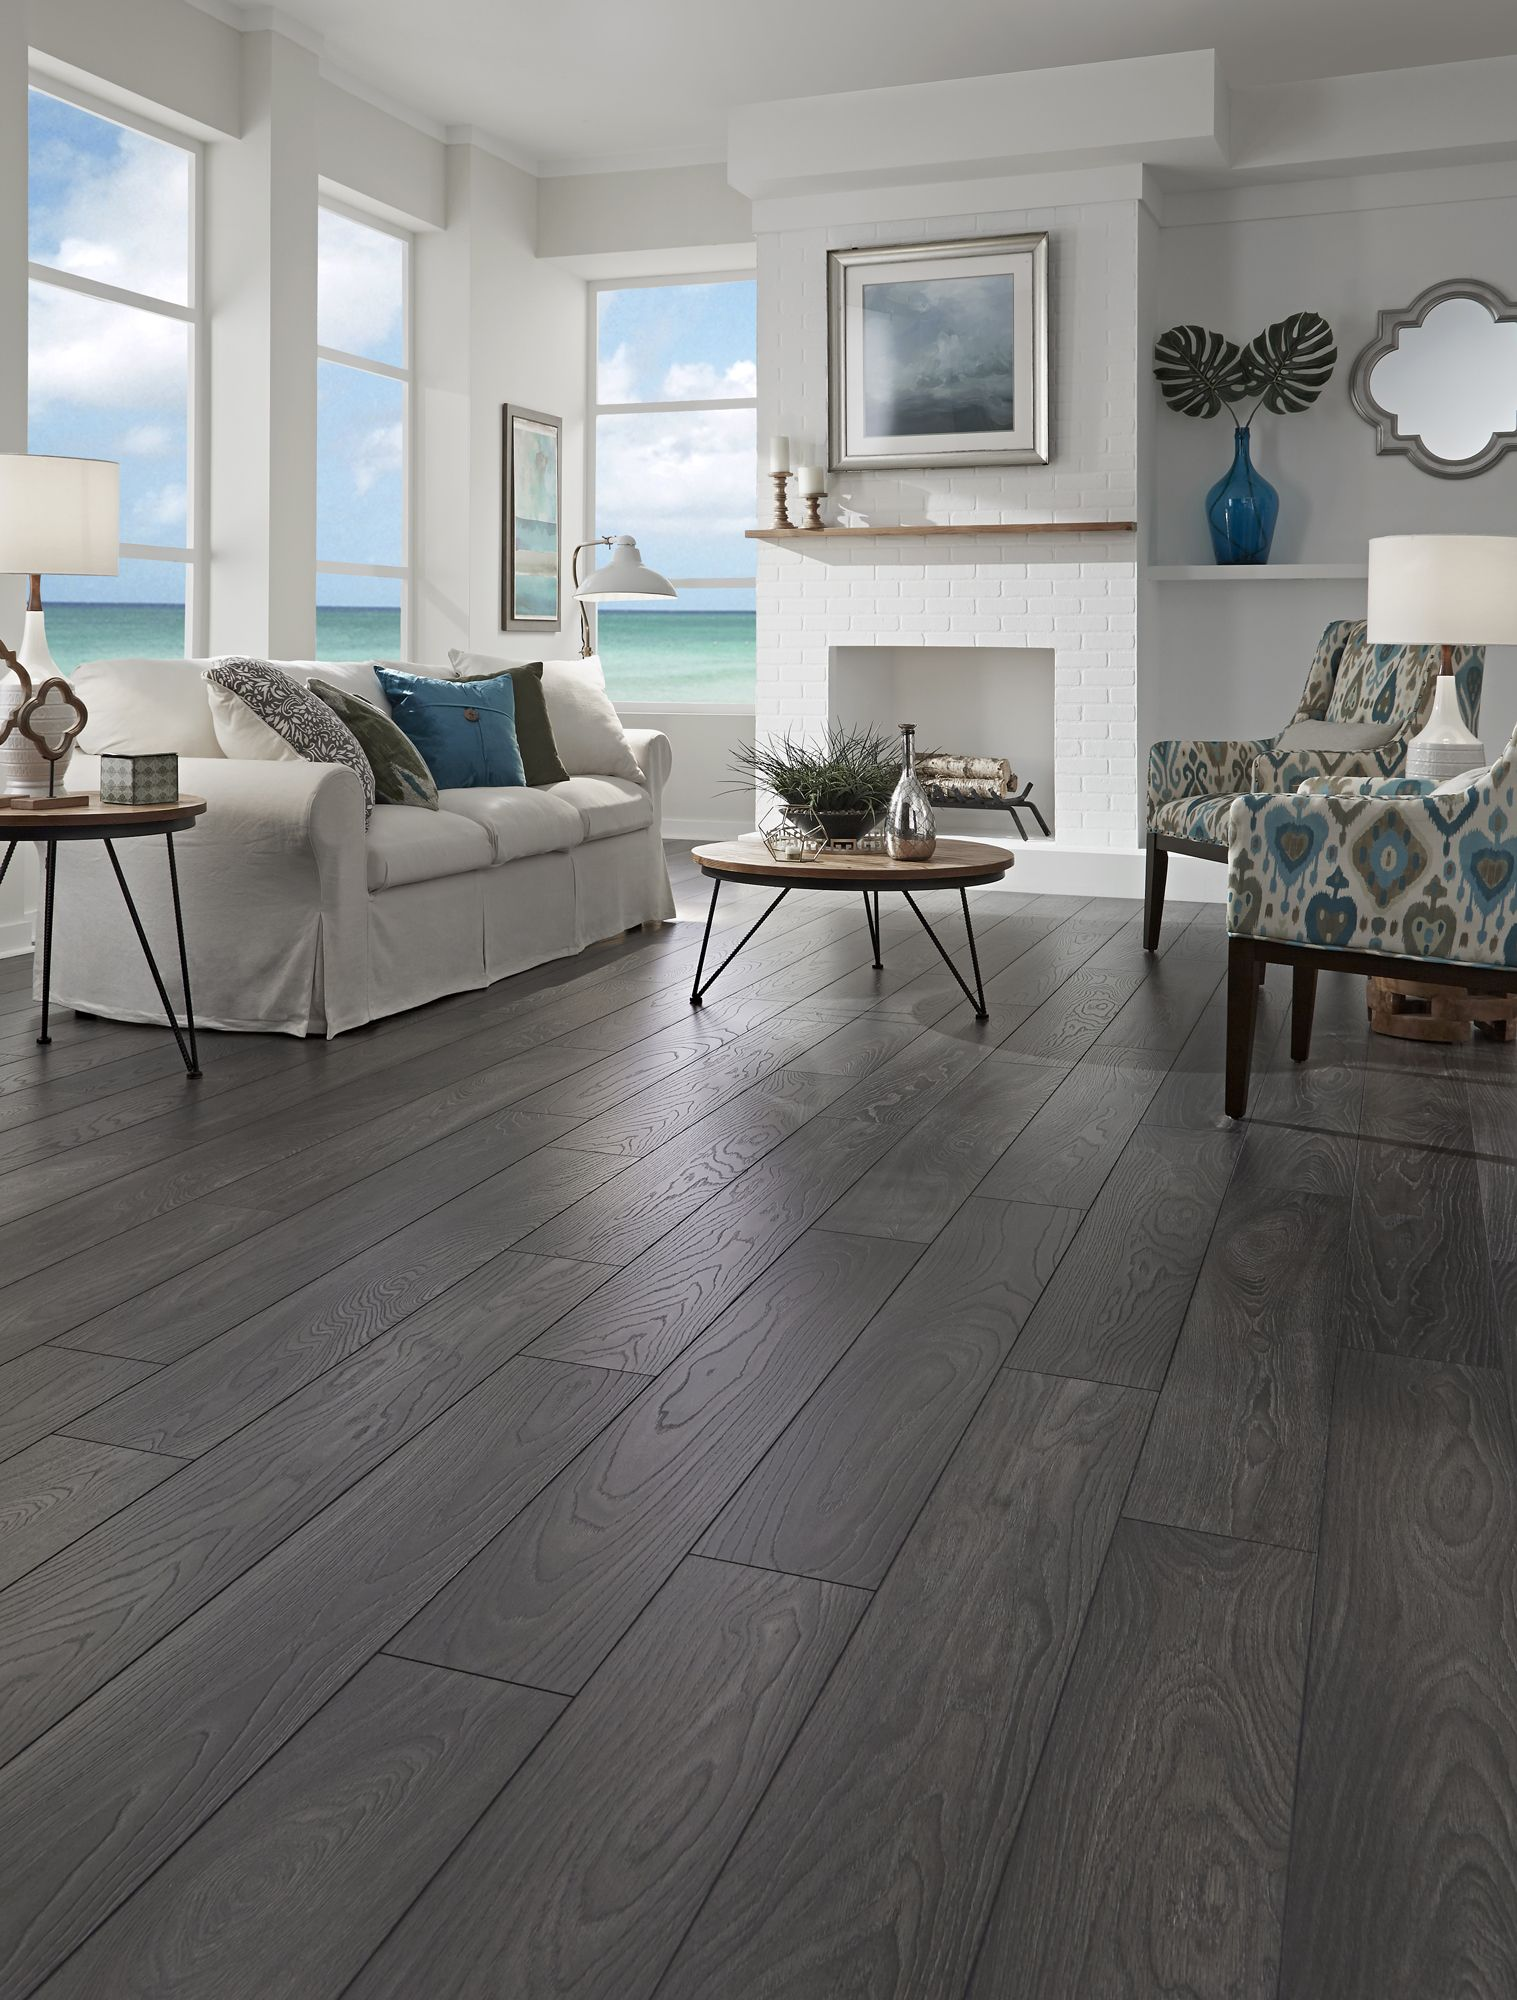 Seaside Grays Create A Feeling Of Relaxed Living Carbon Oak Laminate Has A Wirebrushed Texture Grey Laminate Flooring Home Grey Laminate Flooring Living Room